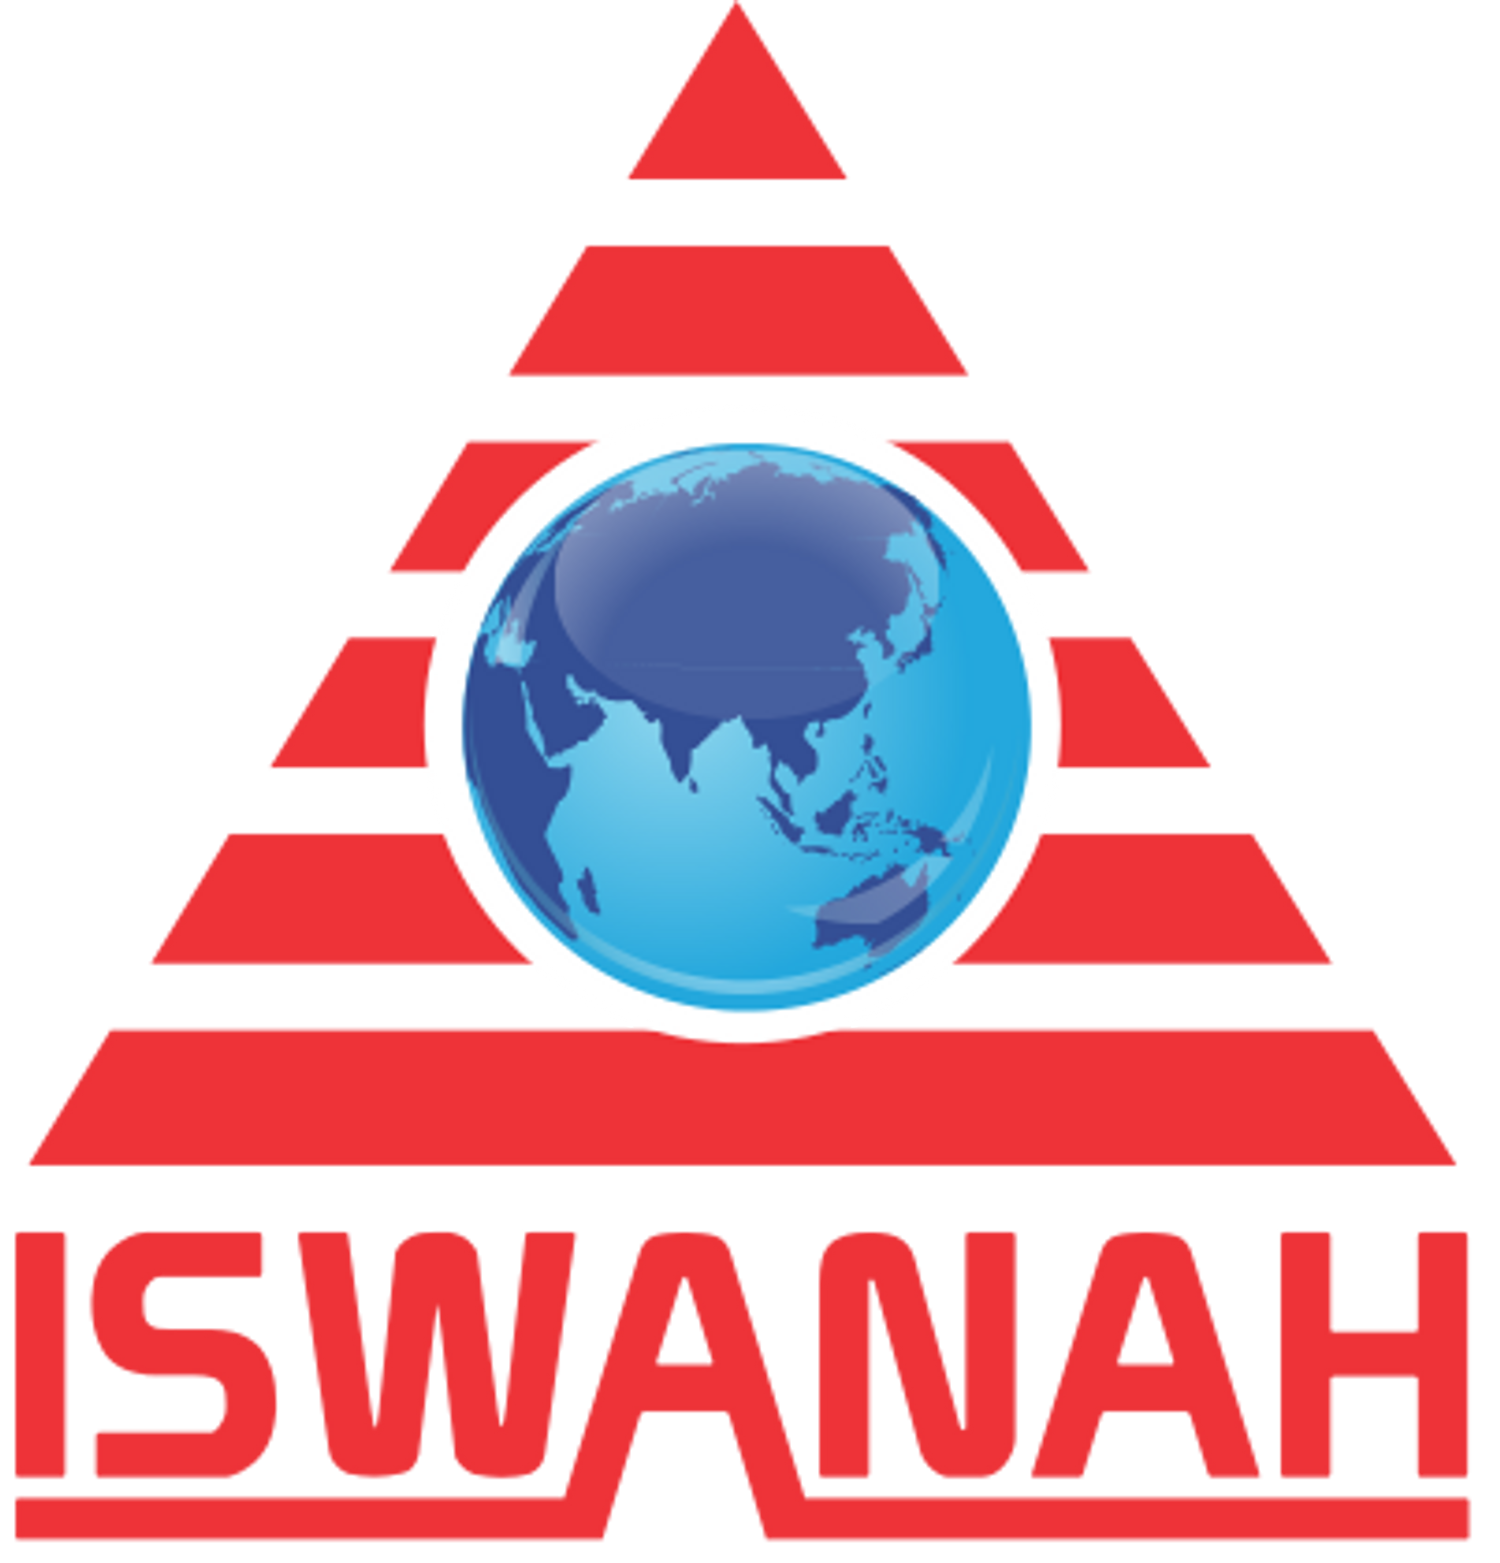 Iswanah Care - HILMI